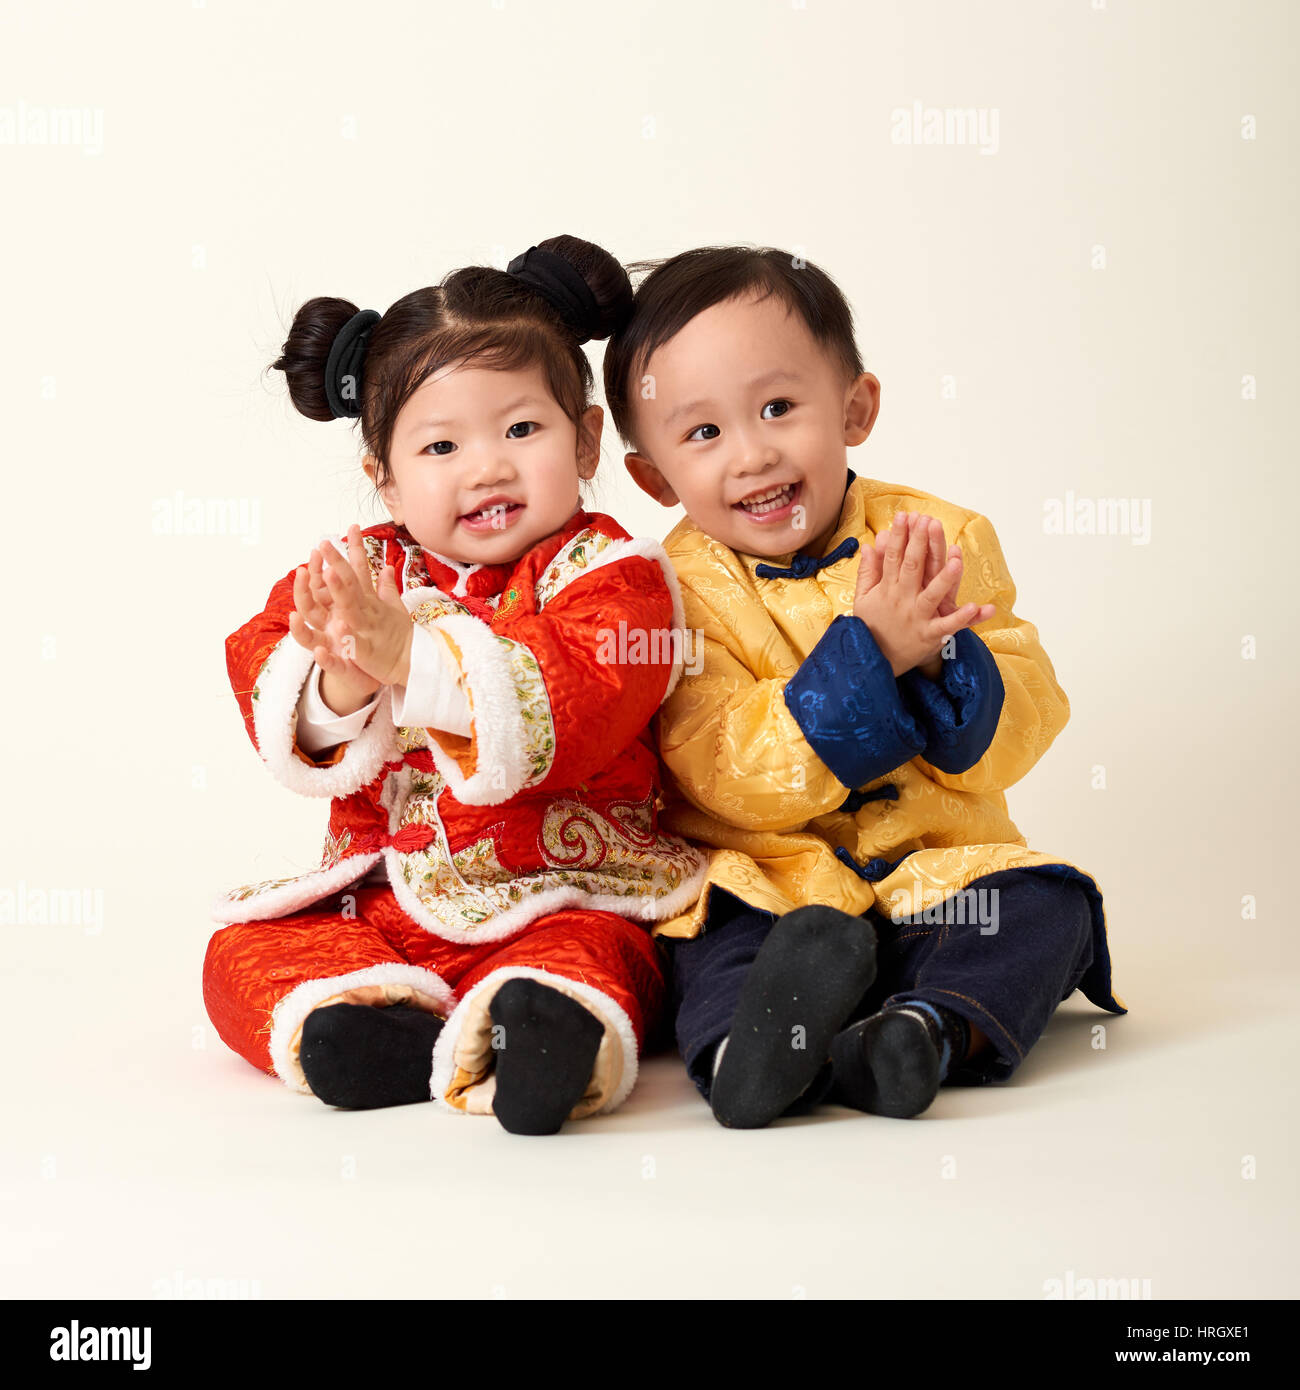 chinese baby boy and girl in traditional chinese new year outfit celebrating lunar new year - Chinese New Year Outfit